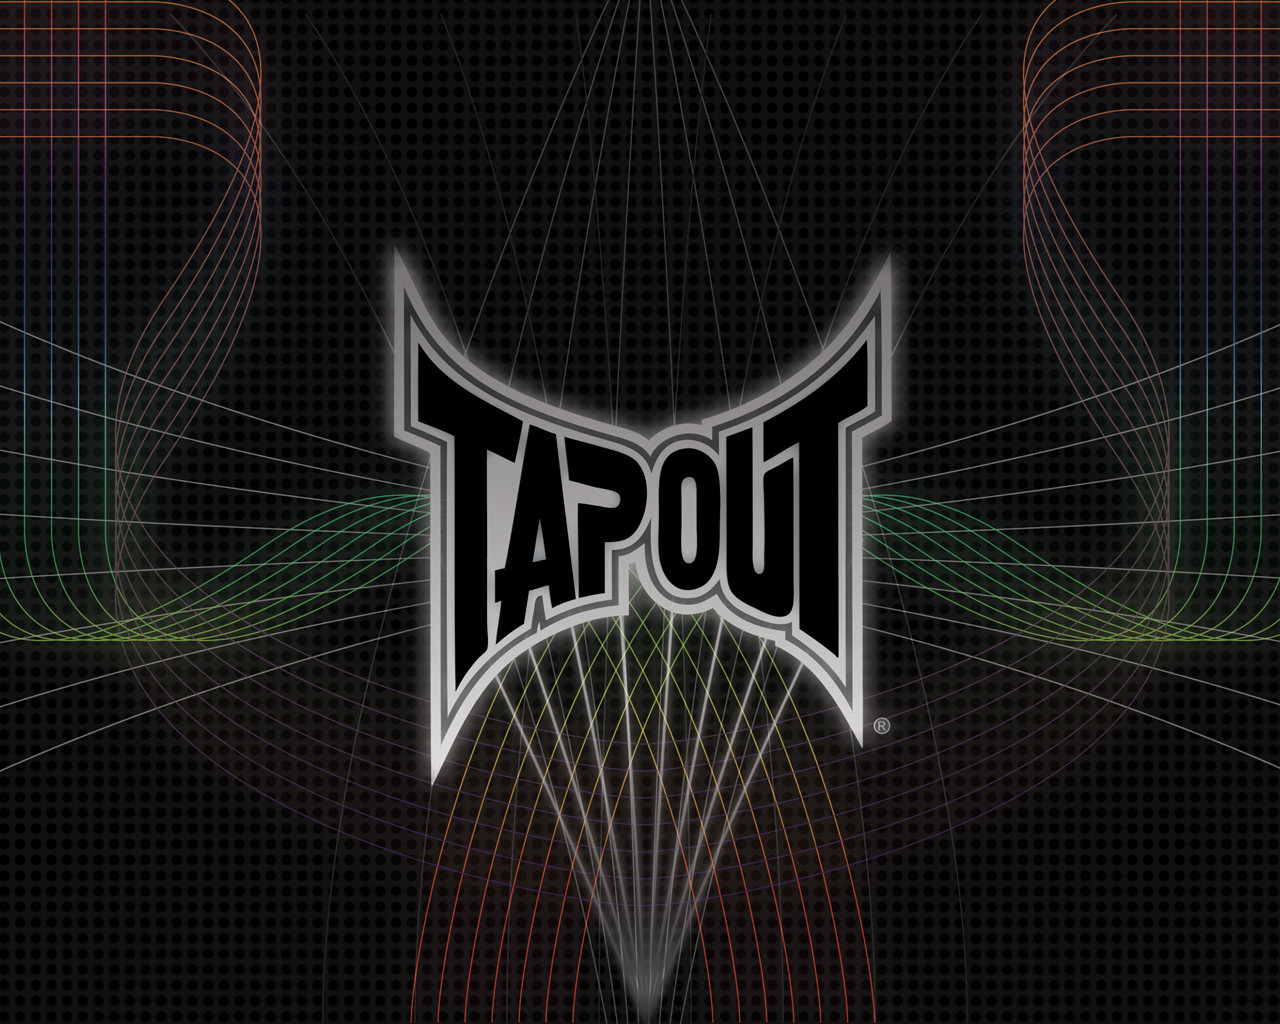 tapout wallpaper for facebook - photo #25